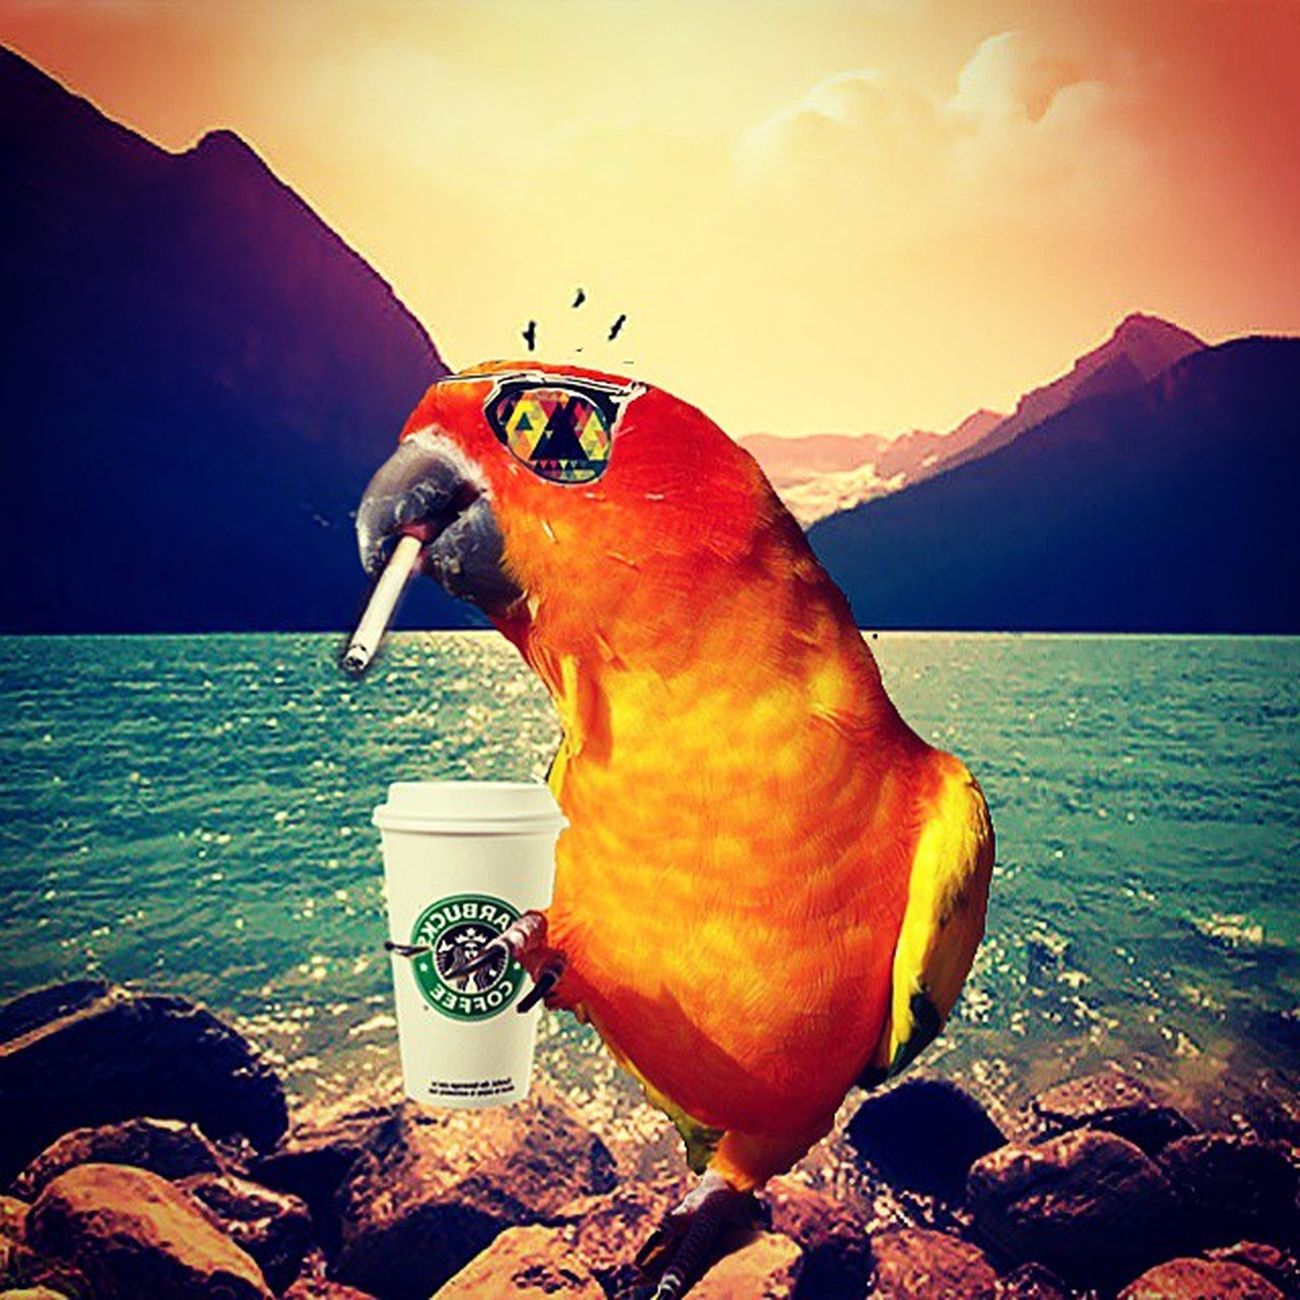 Birds now a days 🐦 Sunconure Chilling Landscape Hipsterbird Putabirdonit Portlandiaeverywhere ShitHappens Conureplease Indie Alternative Urban Starbucks Coffee Cigarette  Smoker Serene Mellow Graphicskills Edit